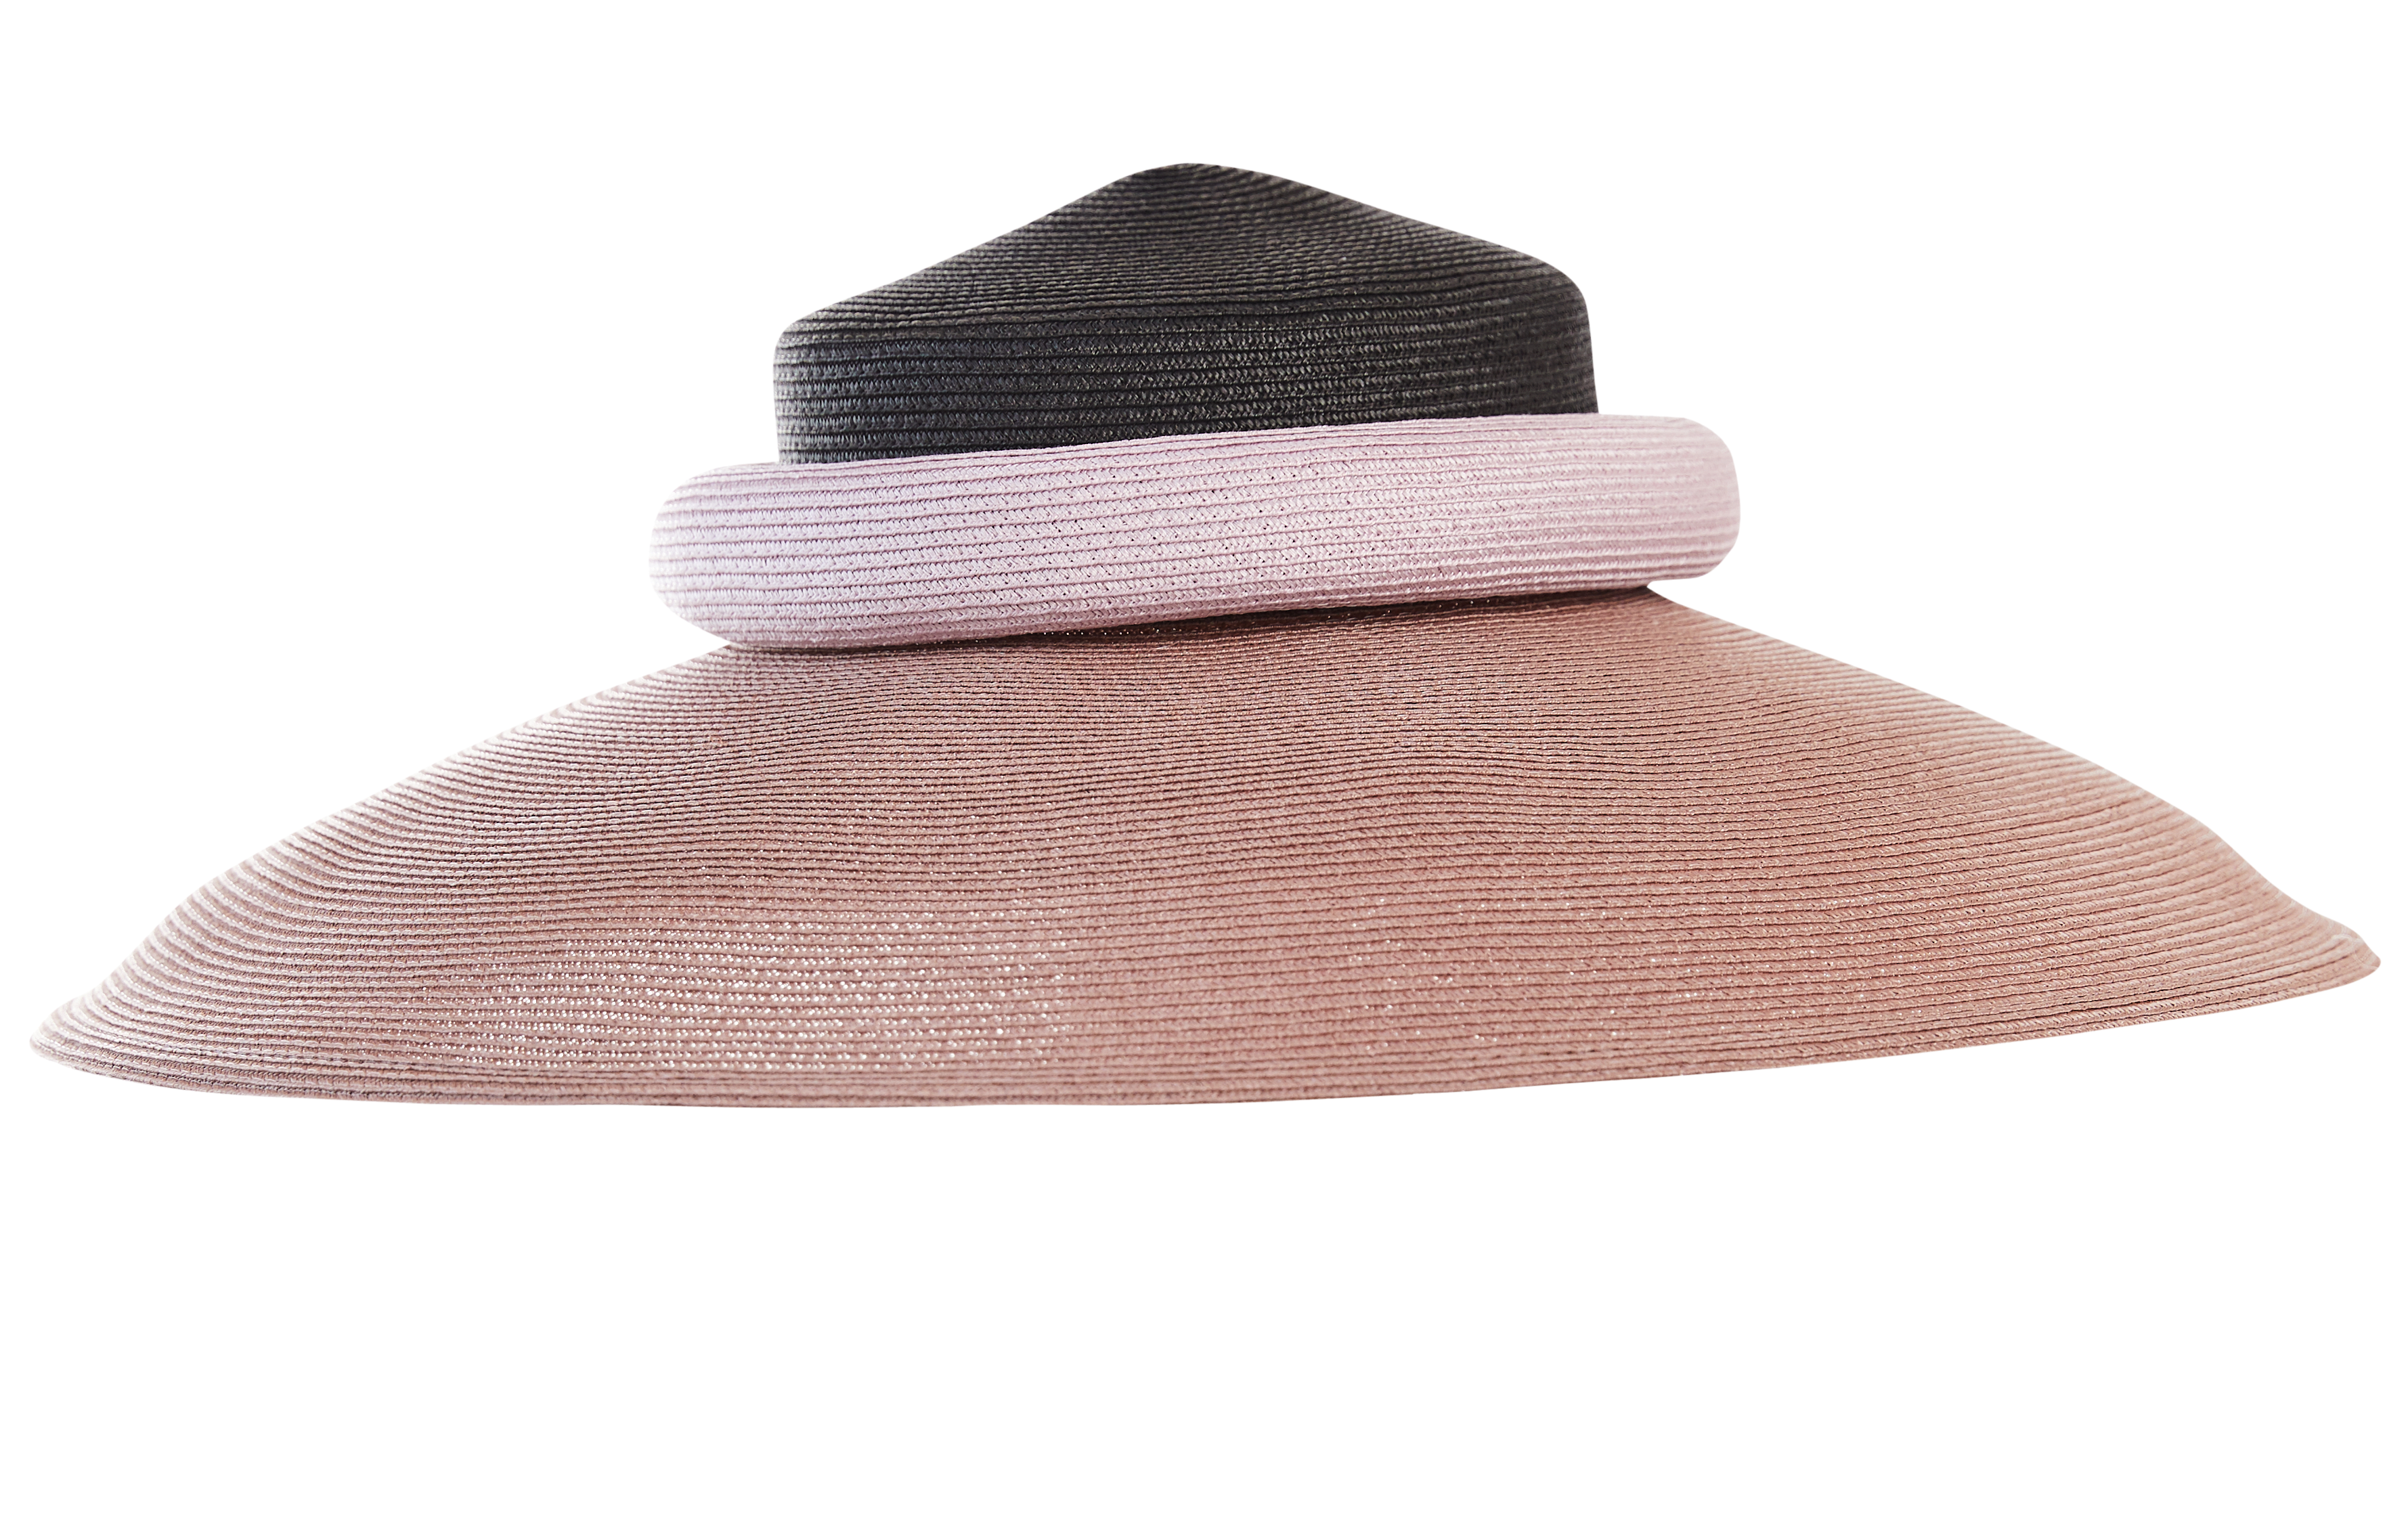 pink and black sun hat